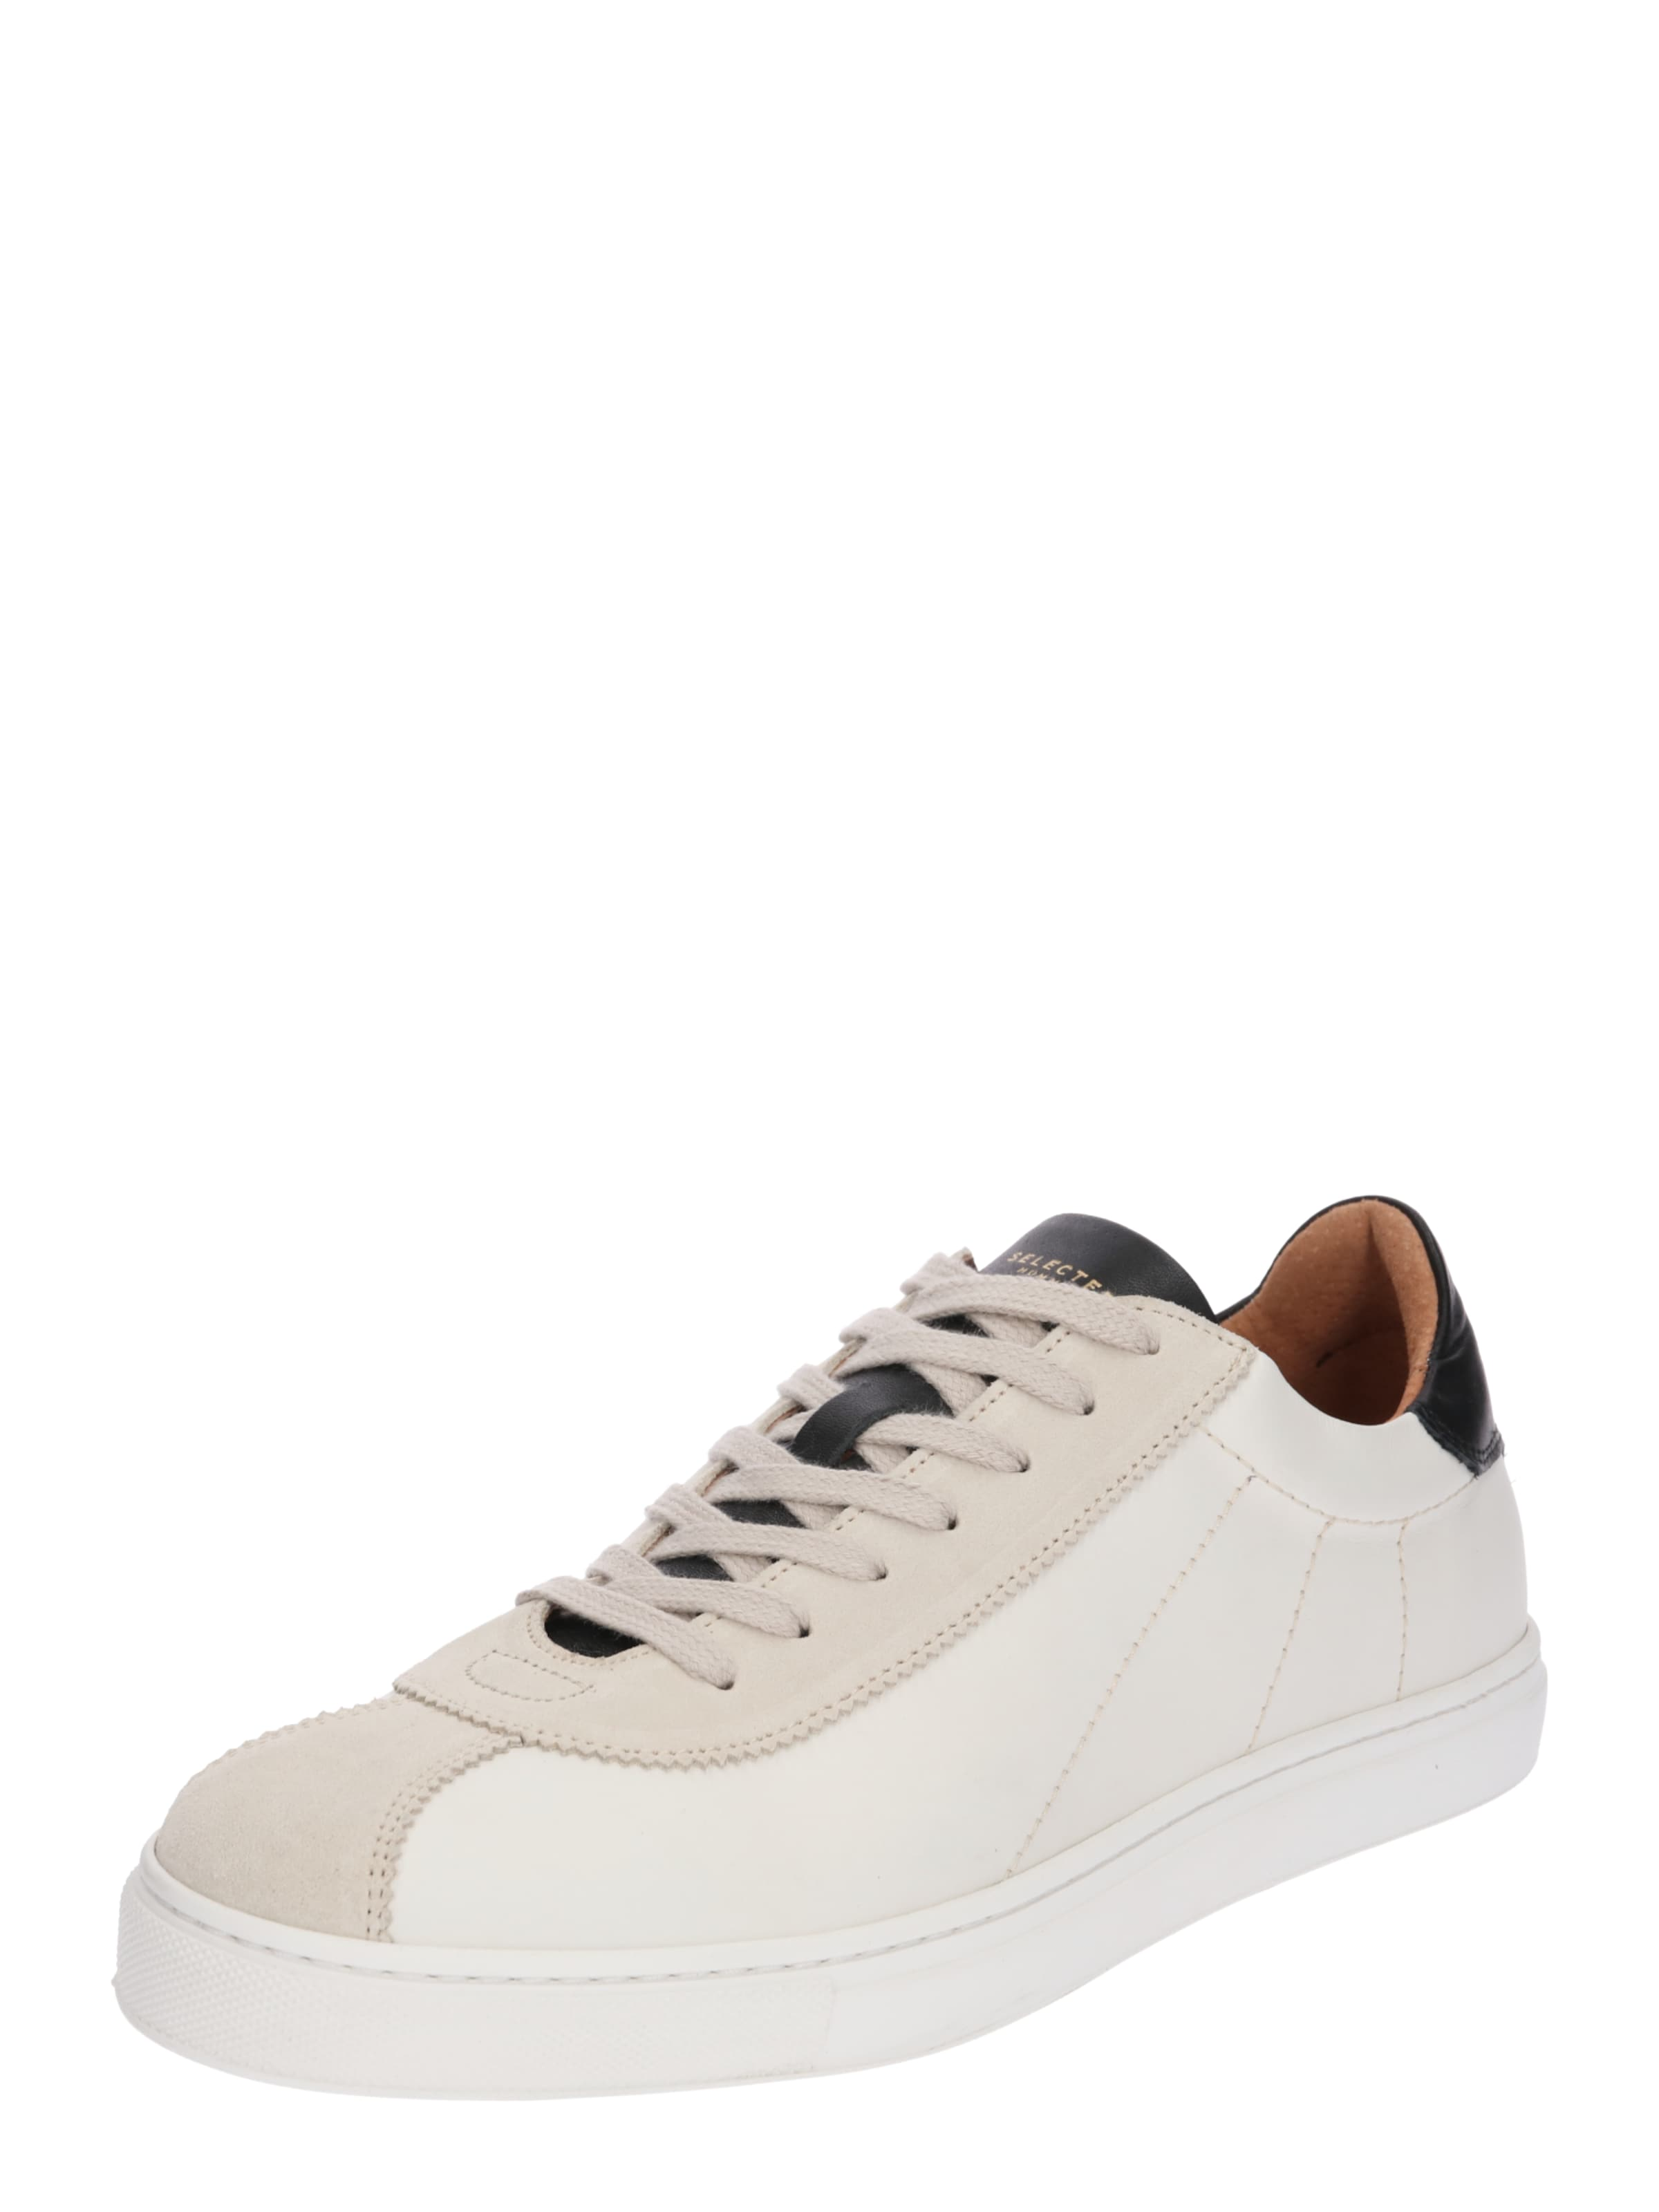 SELECTED HOMME | Turnschuhe SLHDEAN CLASSIC TRAINER